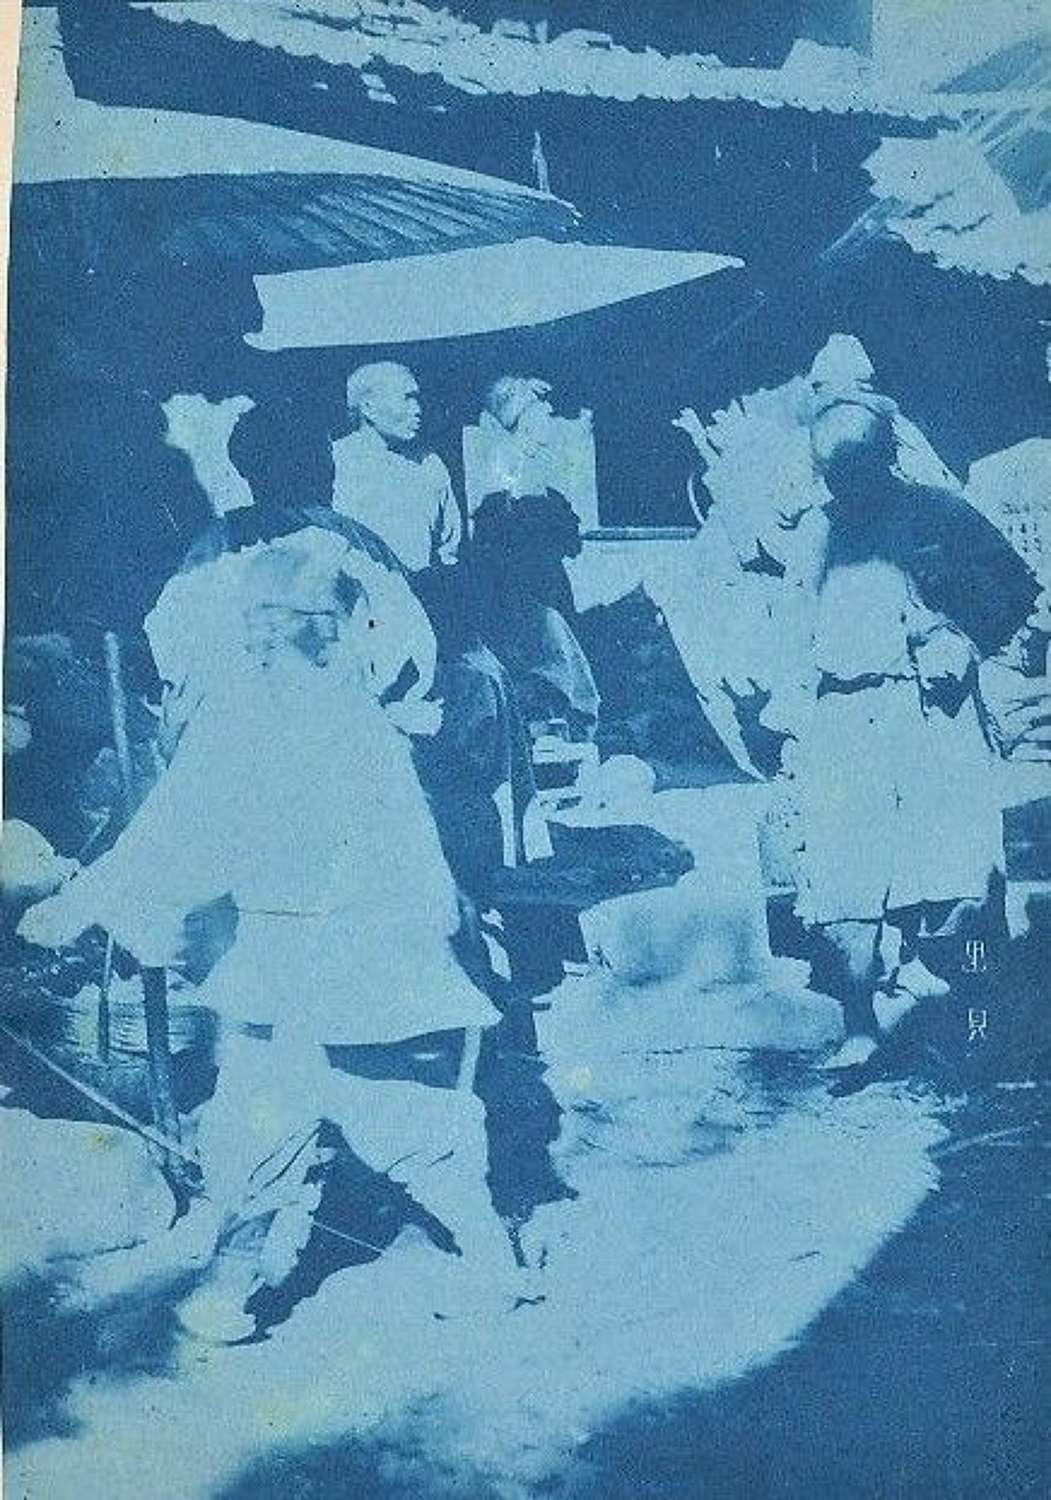 Cyanotype Photo of A Market Place China By F. Groceilly C1890